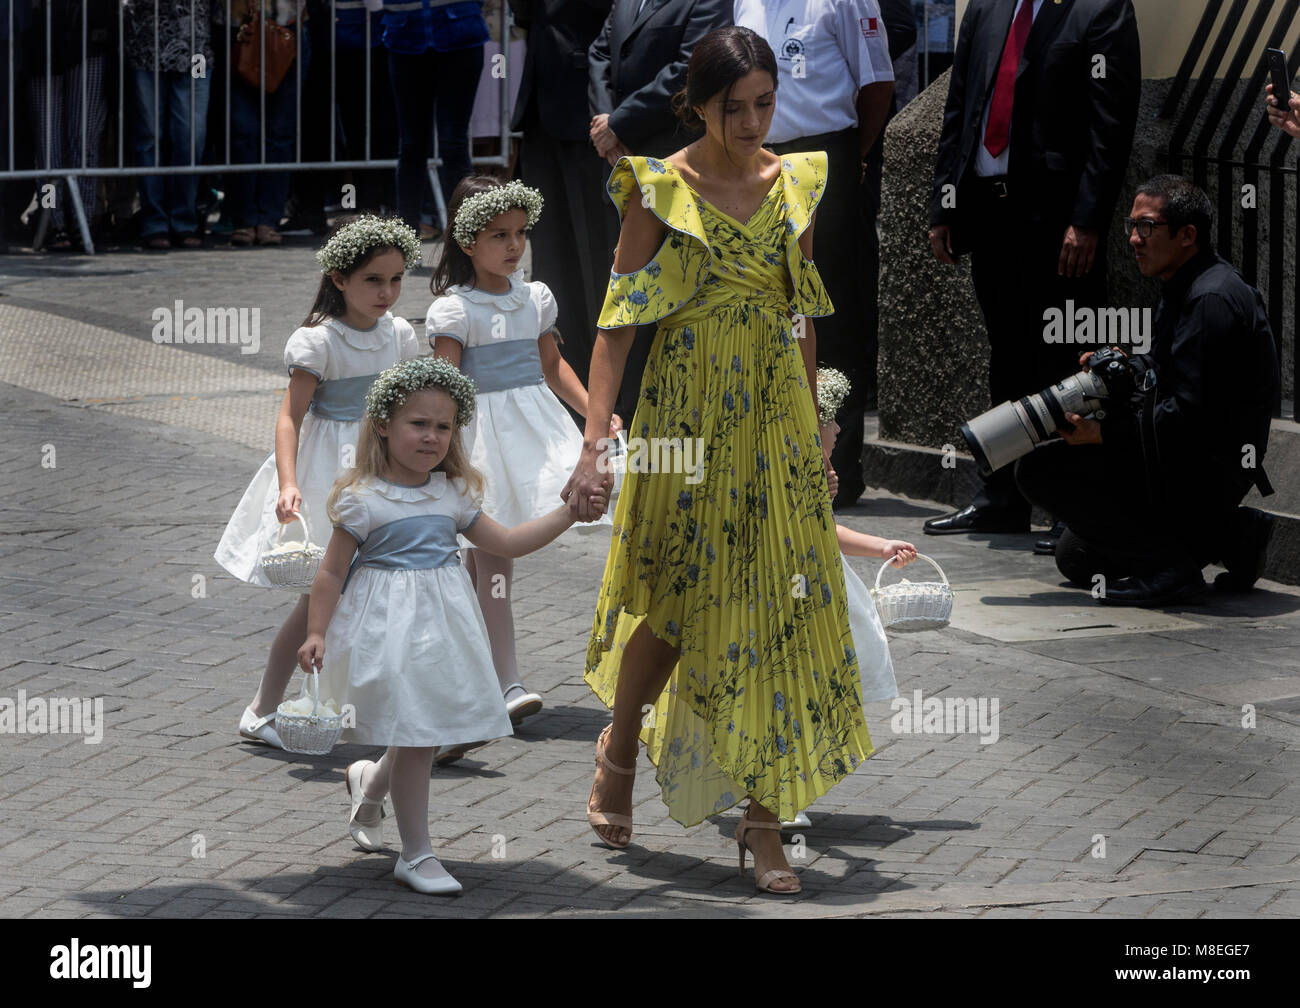 16 March 2018, Peru, Lima: Three flower girls arrive at the old town of Lima for the wedding ceremony of Alessandra Stock Photo